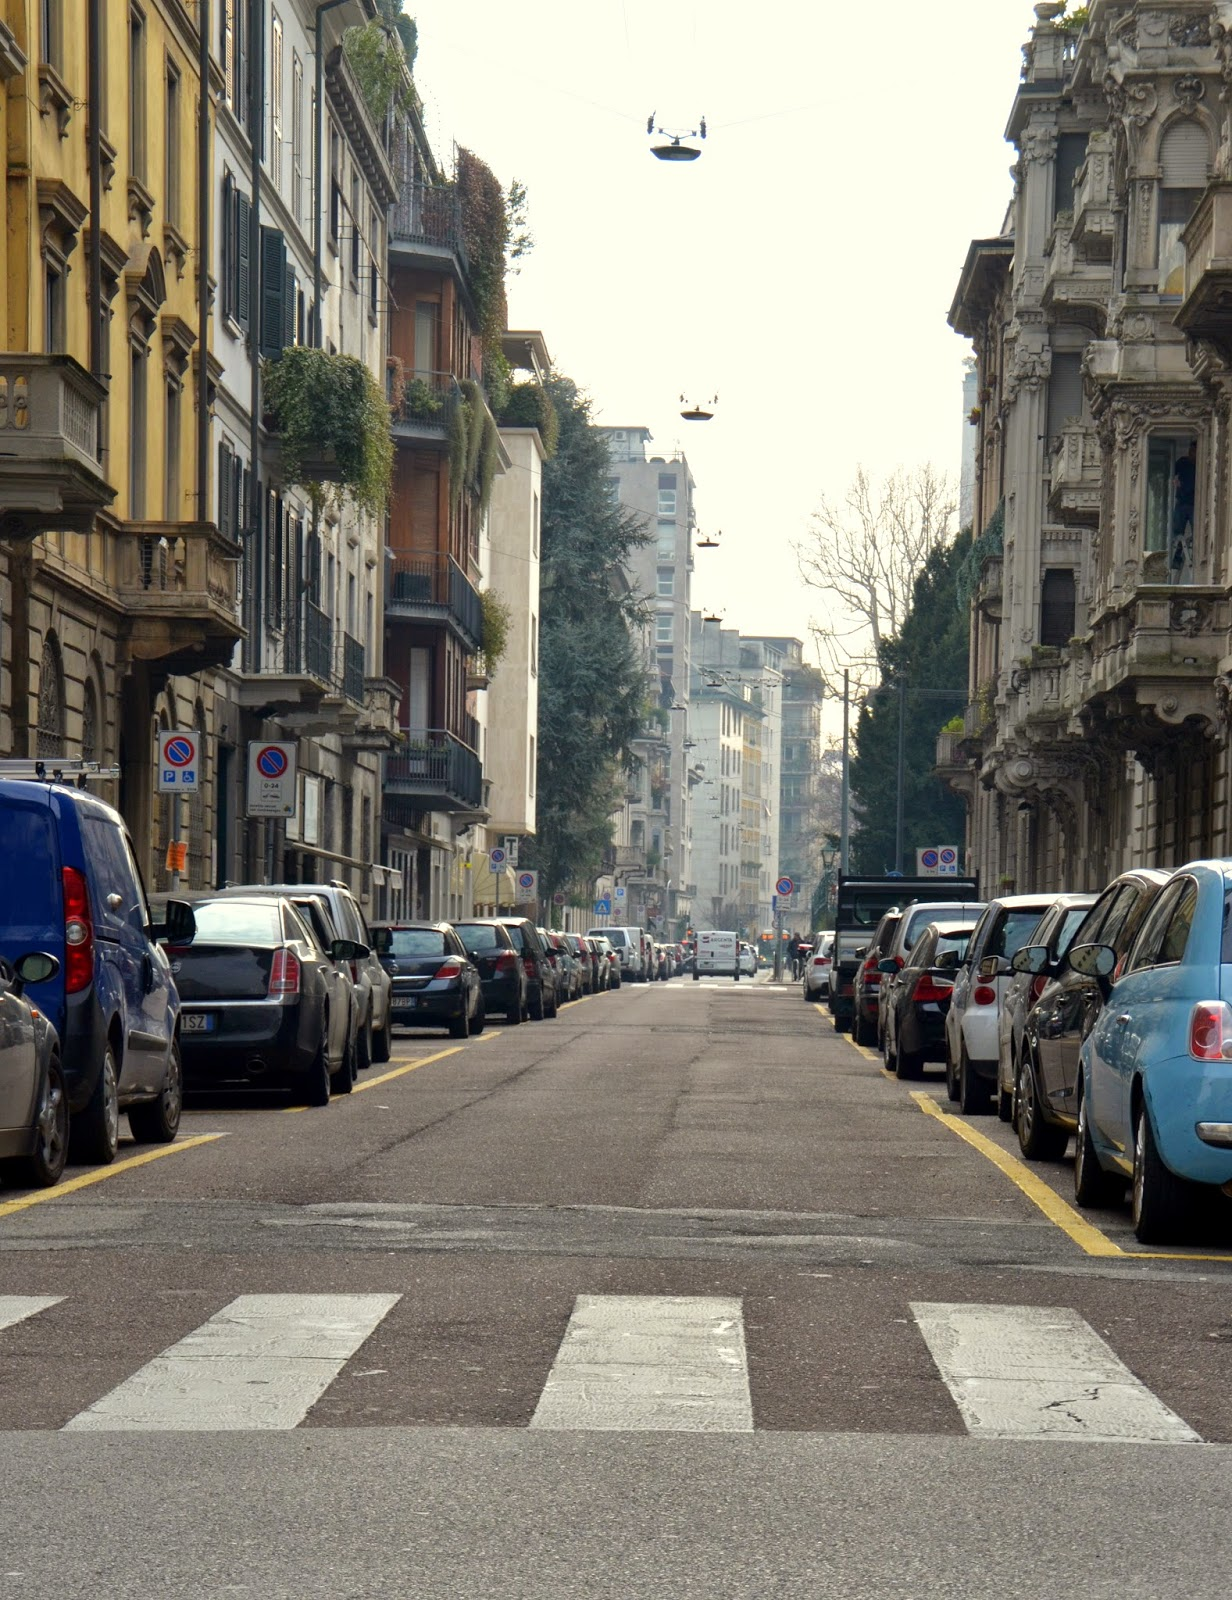 streets-of-milan-italy